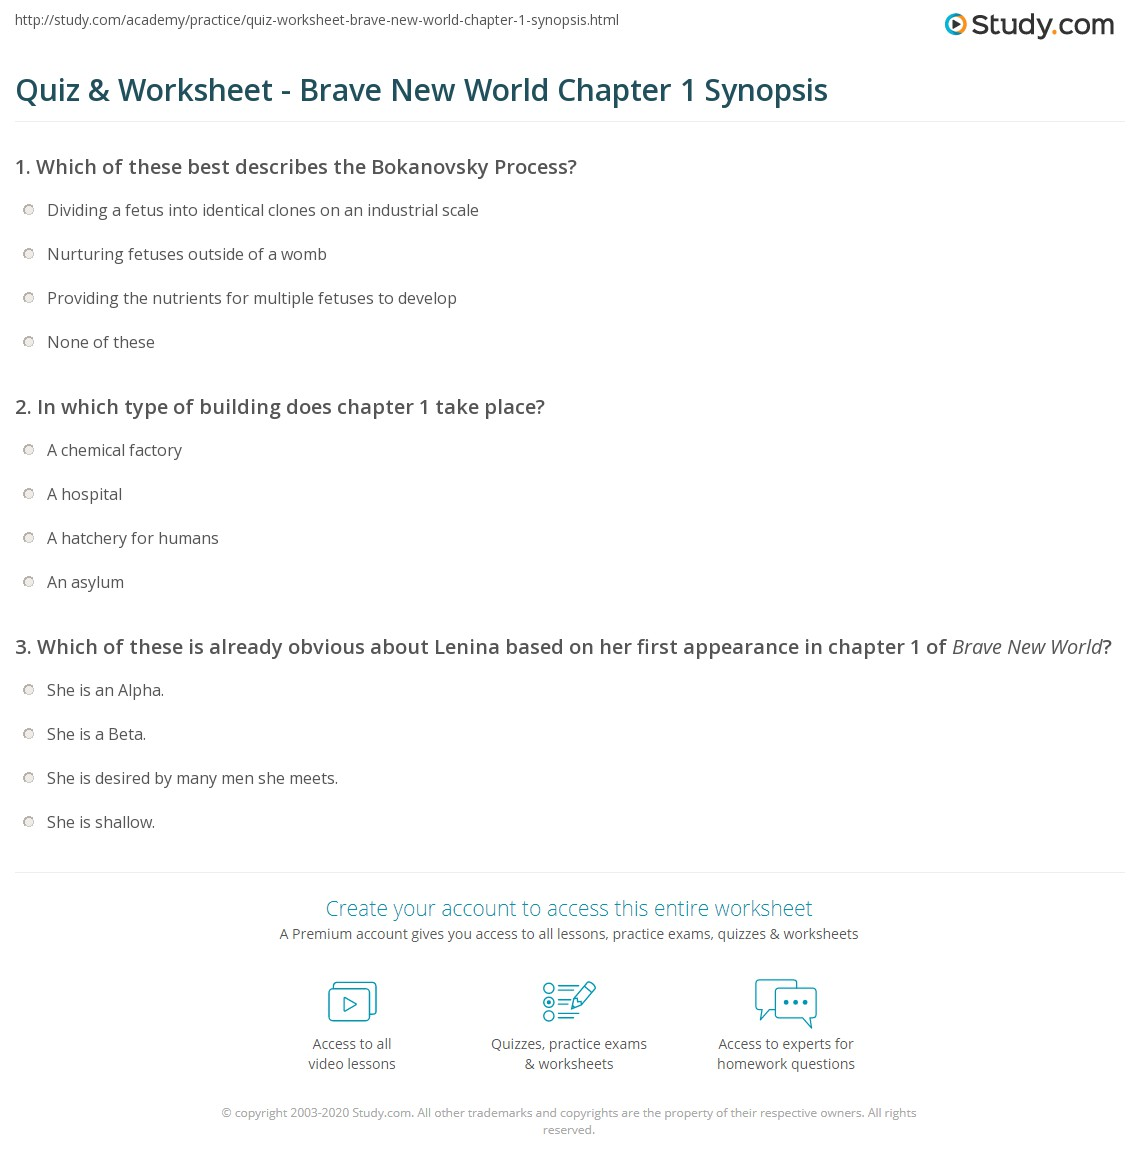 quiz worksheet brave new world chapter 1 synopsis study com rh study com brave new world study guide answers chapter 1 brave new world study guide answers chapter 1